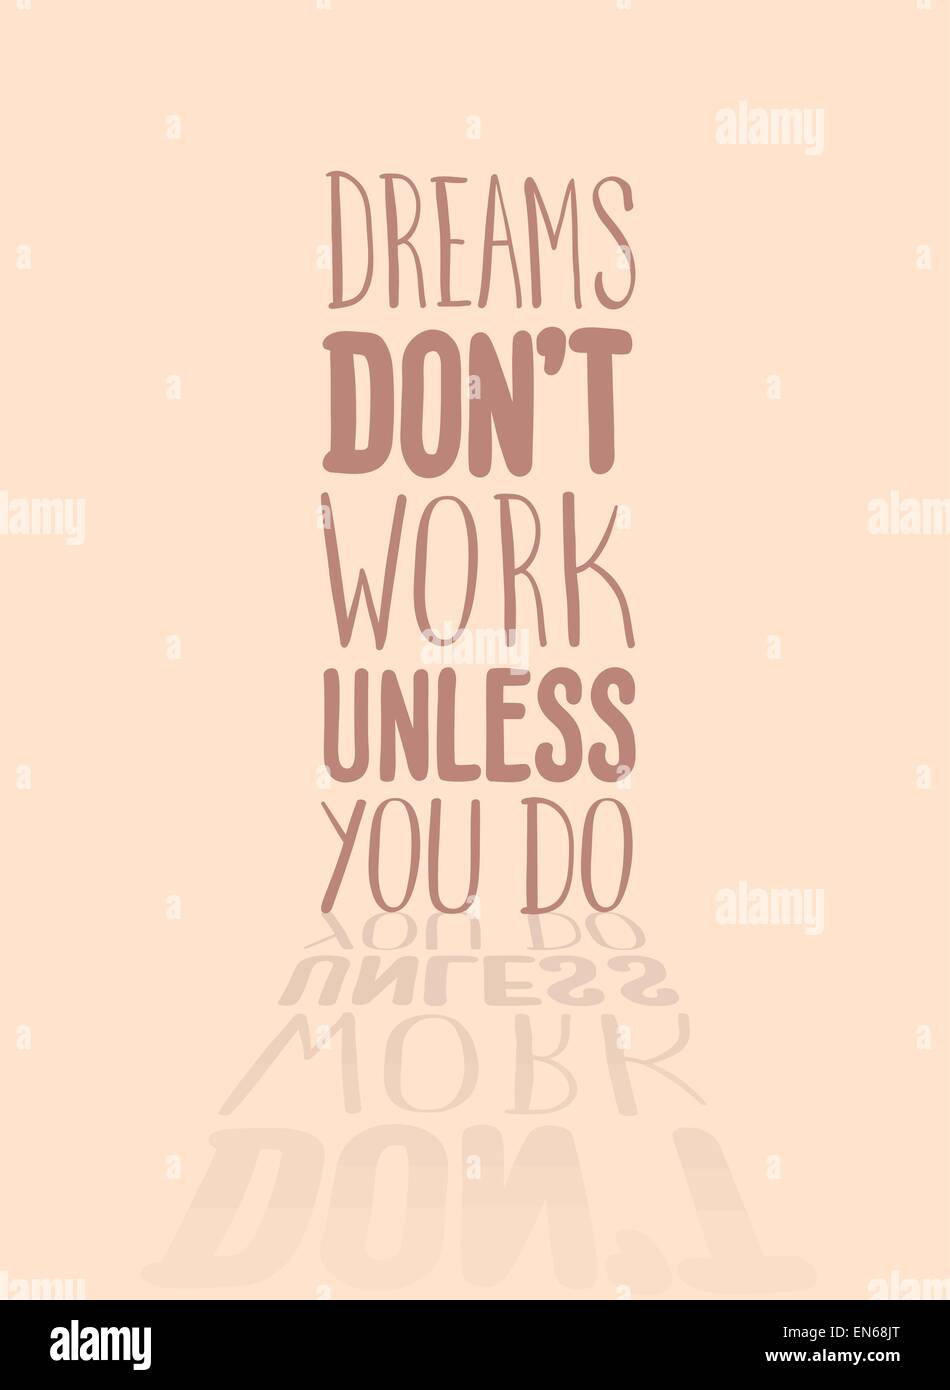 Motivational vector with dream text - Stock Image